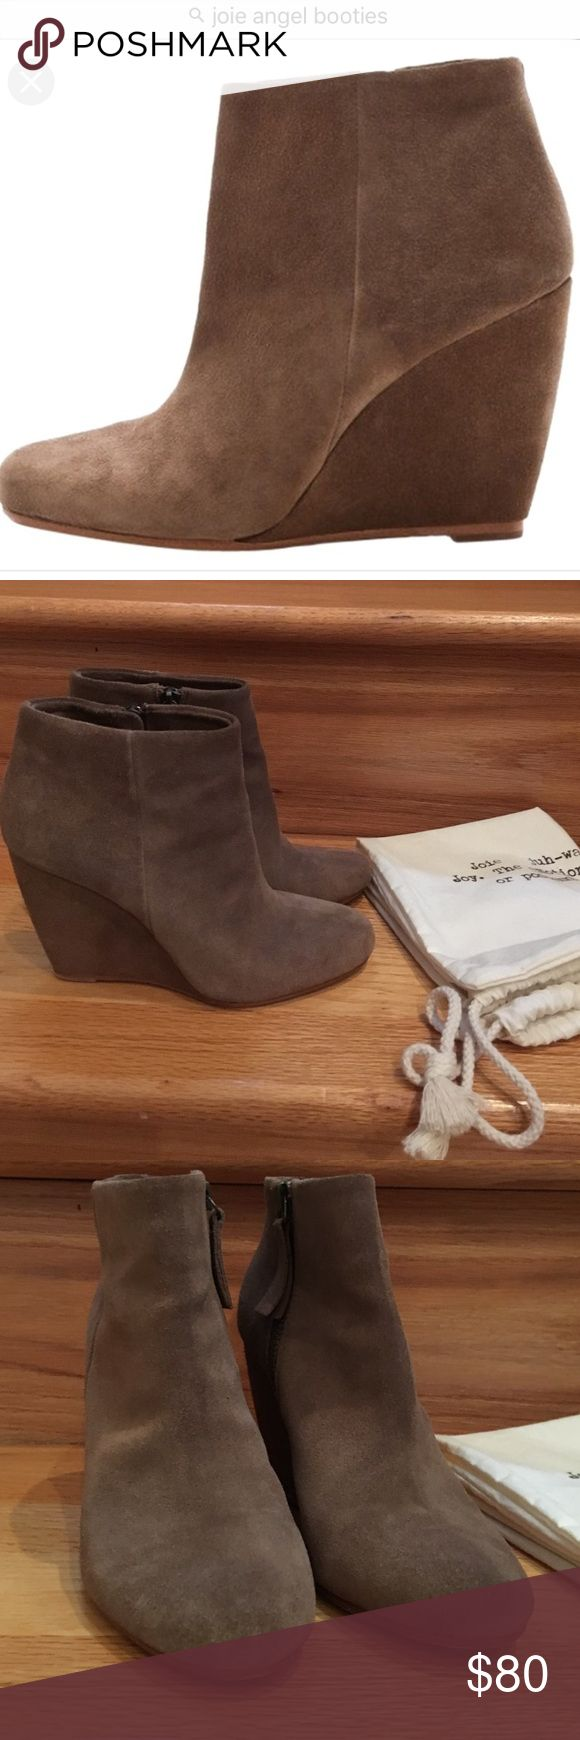 """• Joie • Joie Angel boots. Inside zipper. Approx 3.5"""" wedge heel. Size 36 (US 6). Taupe color. Excellent used condition. Includes dust bag. Joie Shoes Ankle Boots & Booties"""